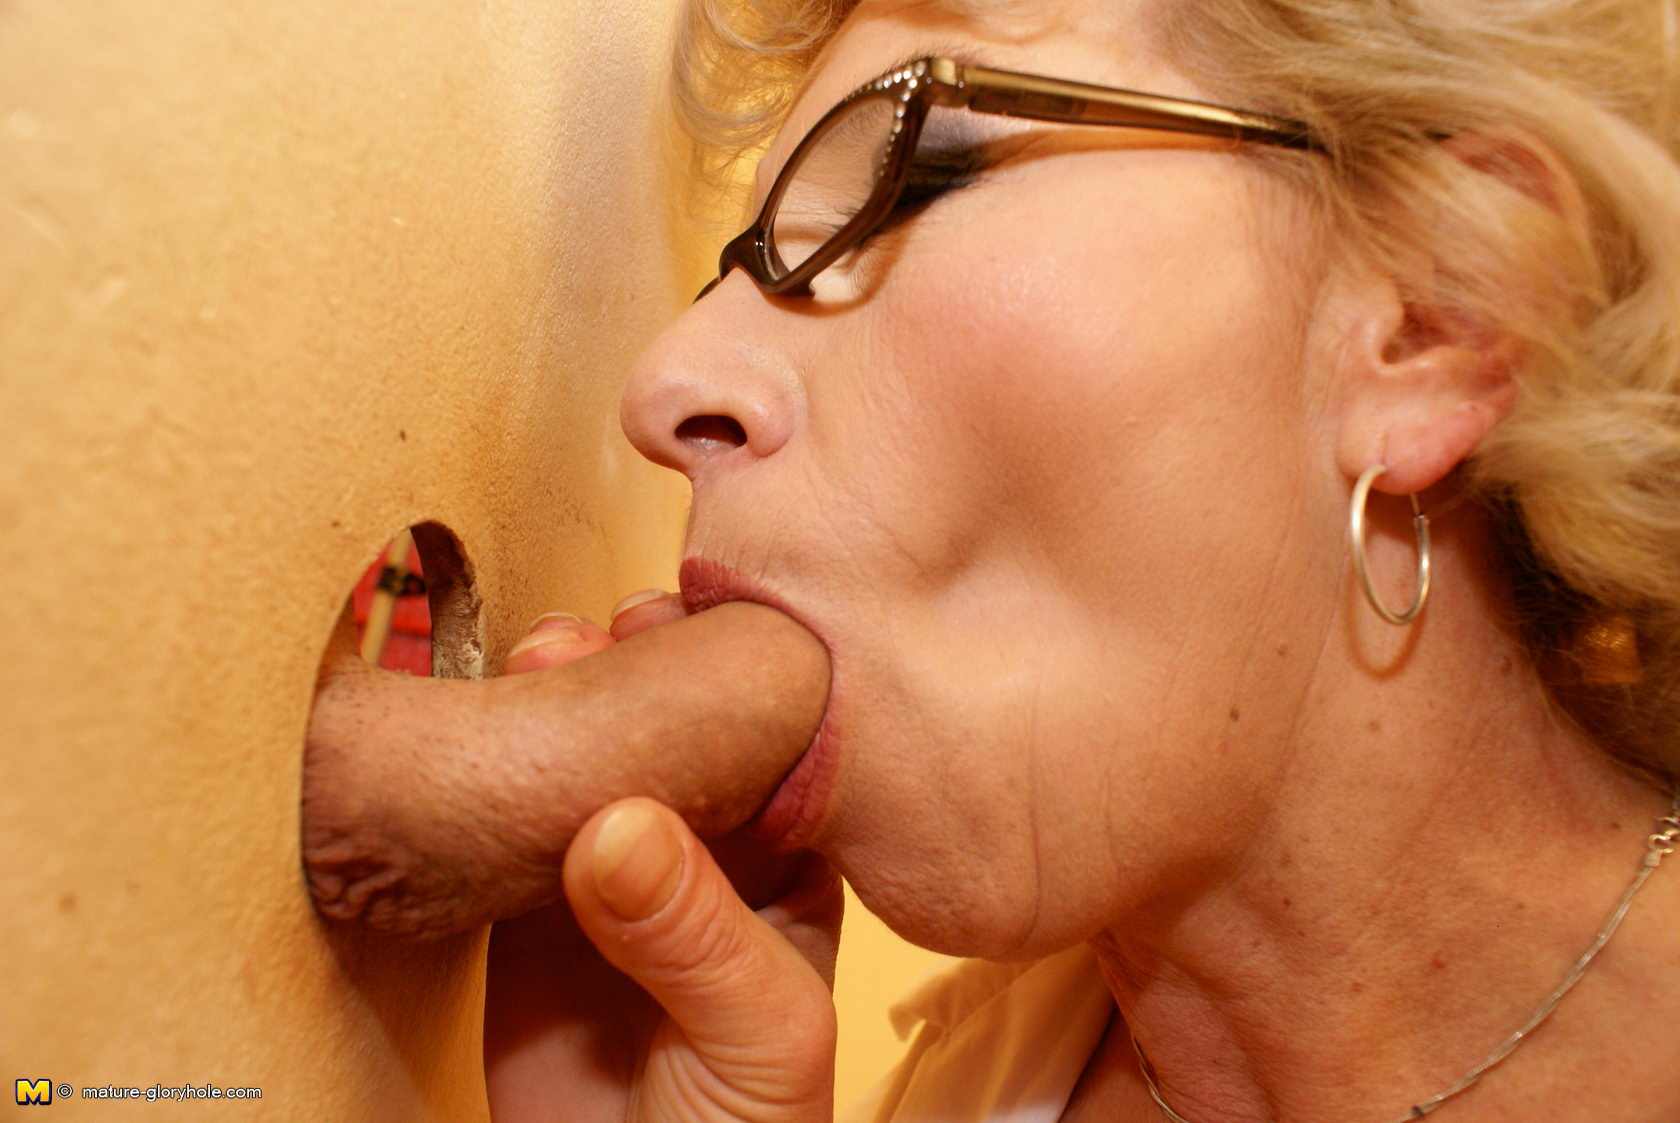 This insane mature cockslut loves to deep-throat on the crapper